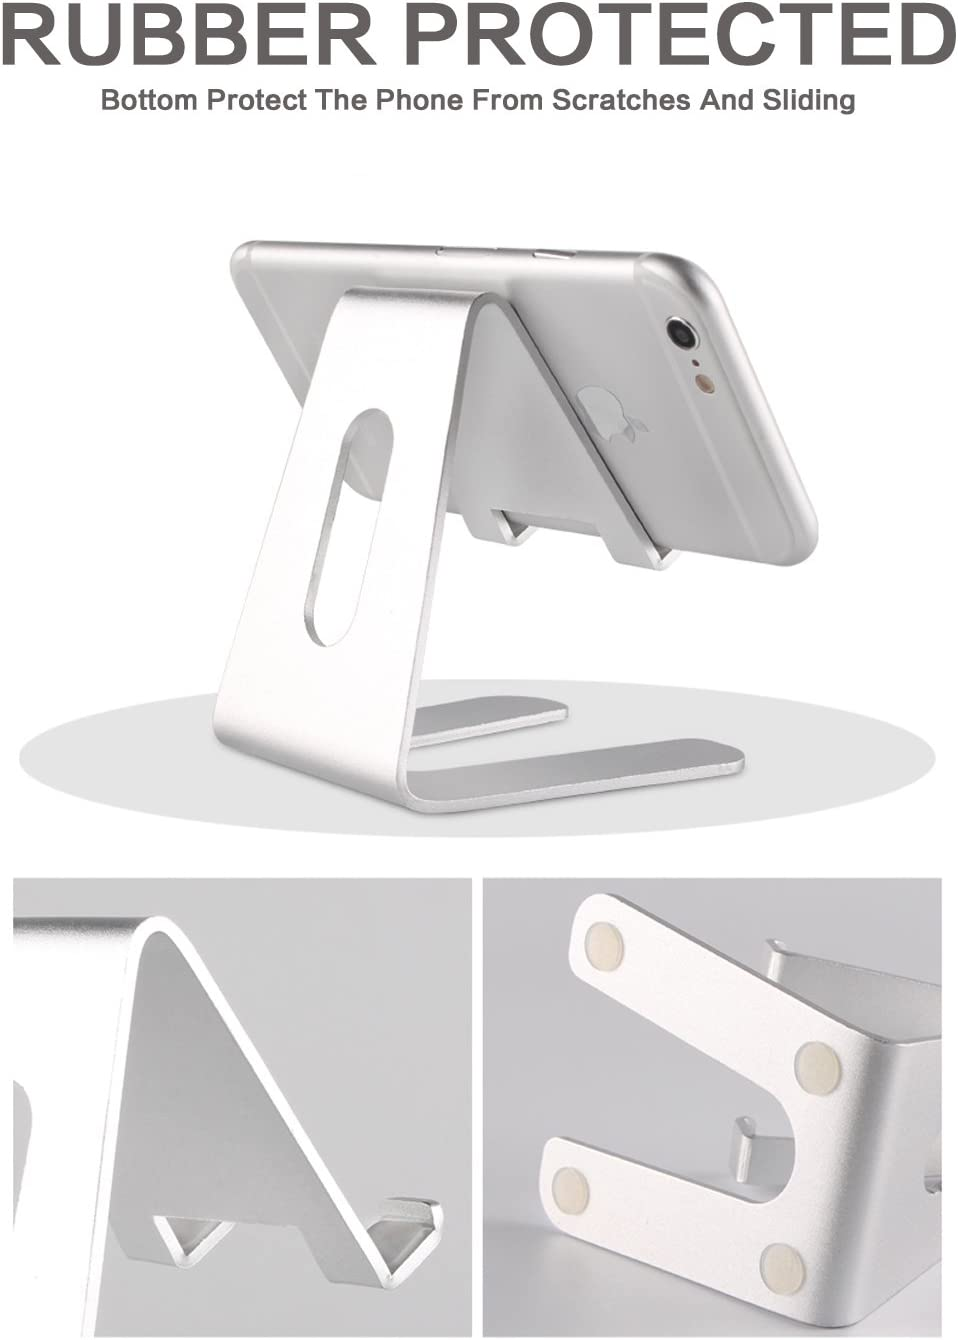 S9// S8 // Note8 Silver Facetime /& Live Stream Switch /& Kindle Cell Phone Stand,NTALL Tablet Stand,Universal Aluminum Holder,Cradle,Dock Stand for All Smartphone,iPad,iPhone X// 8 Plus